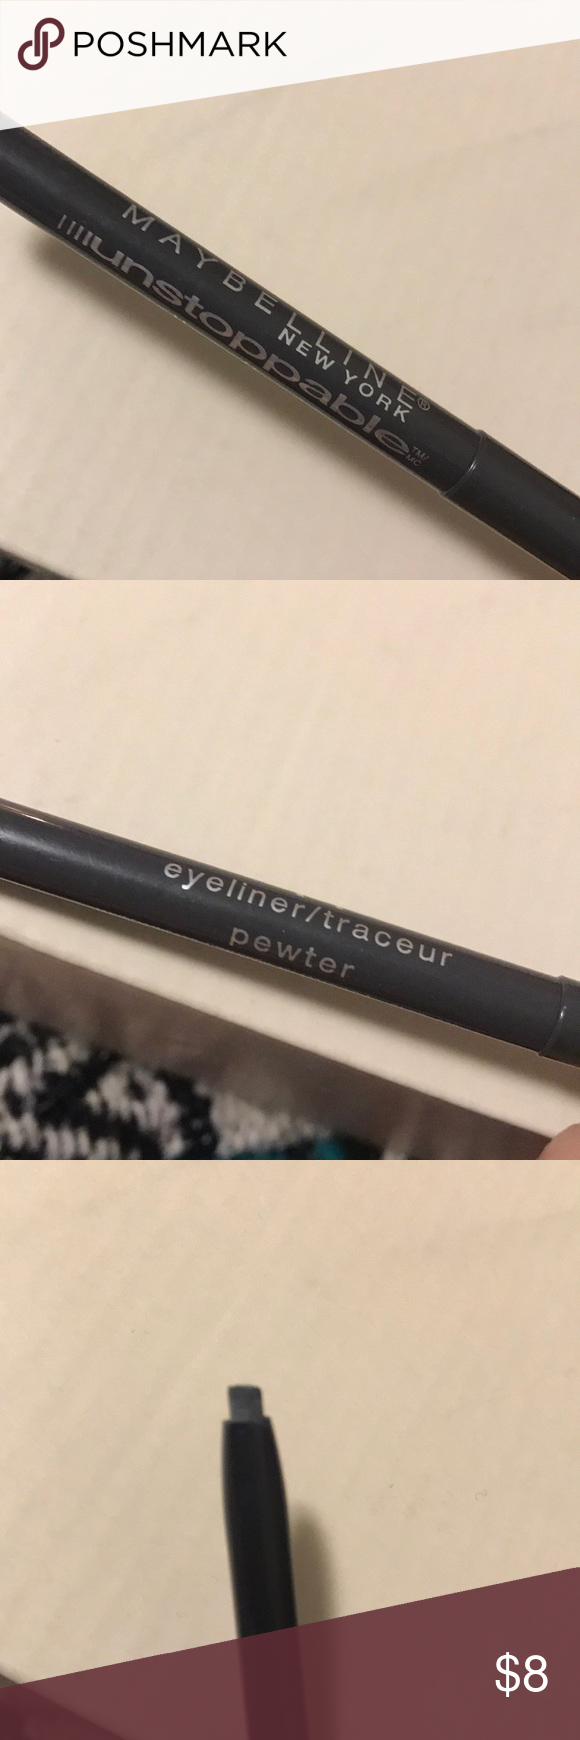 Unstoppable Never Eyeliner Bought Maybelline Used Wrong The Just New rxhCsQdt